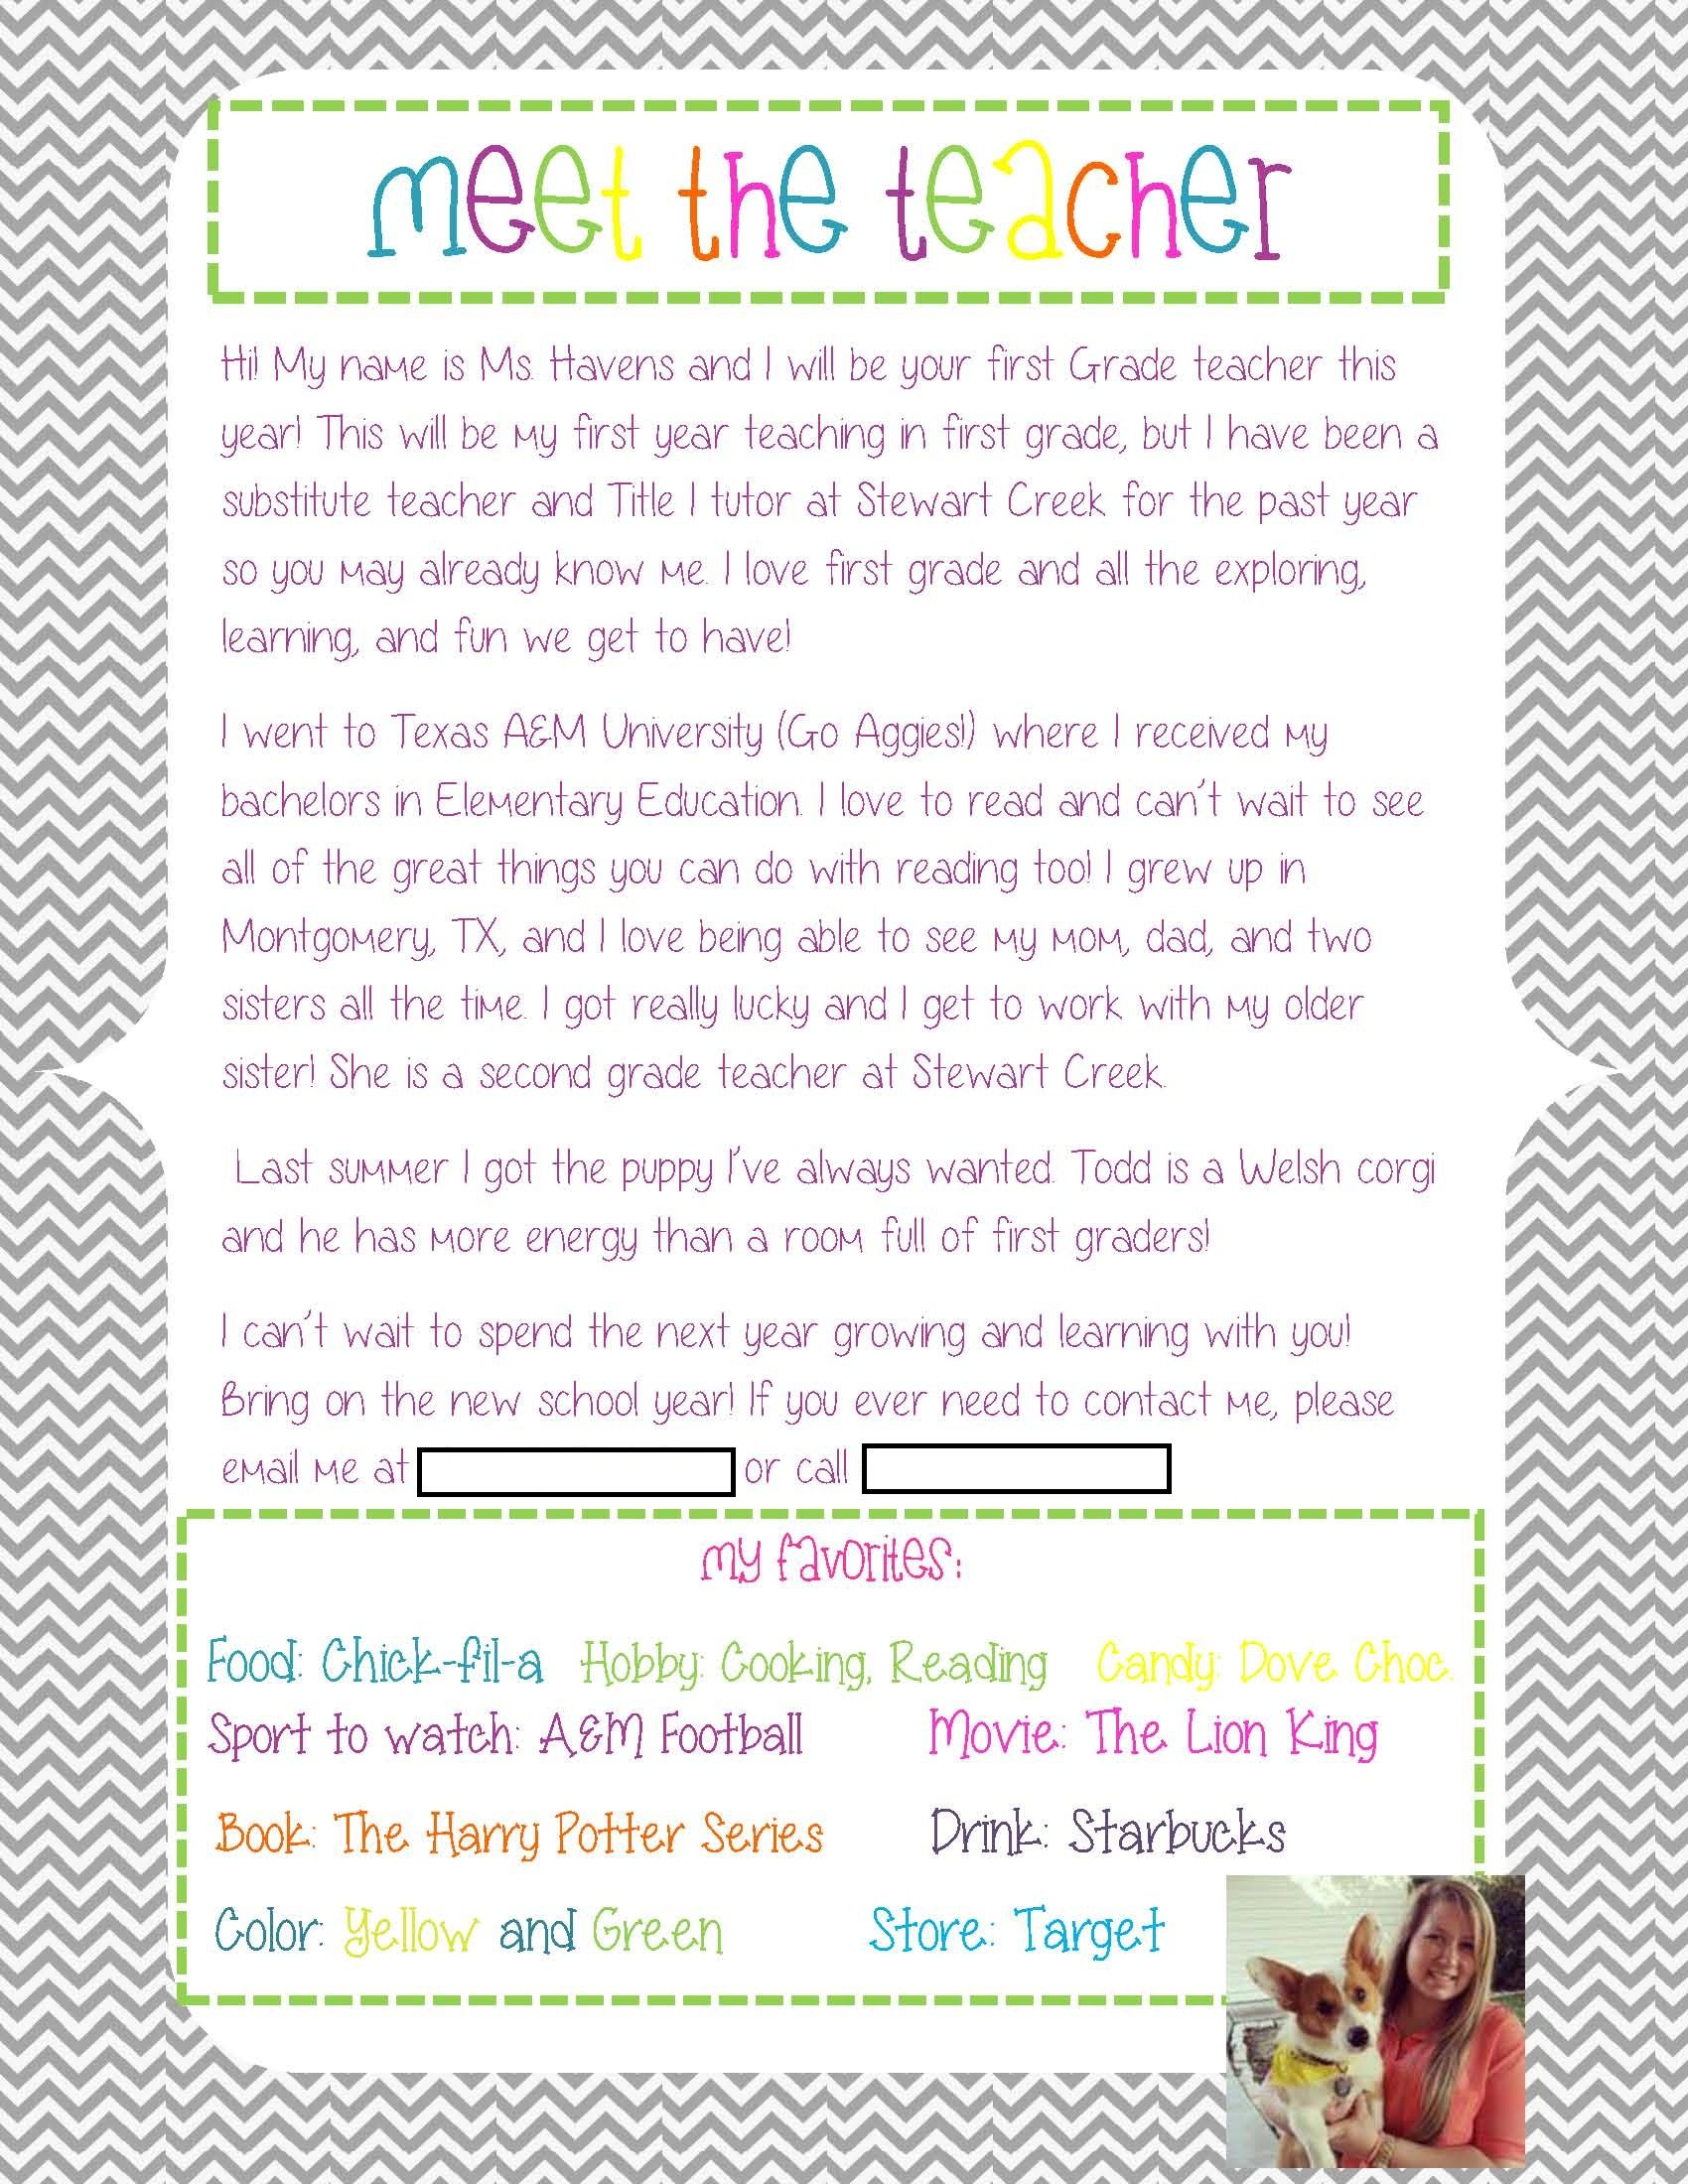 Meet The Teacher Letter To Give Out At The Beginning Of